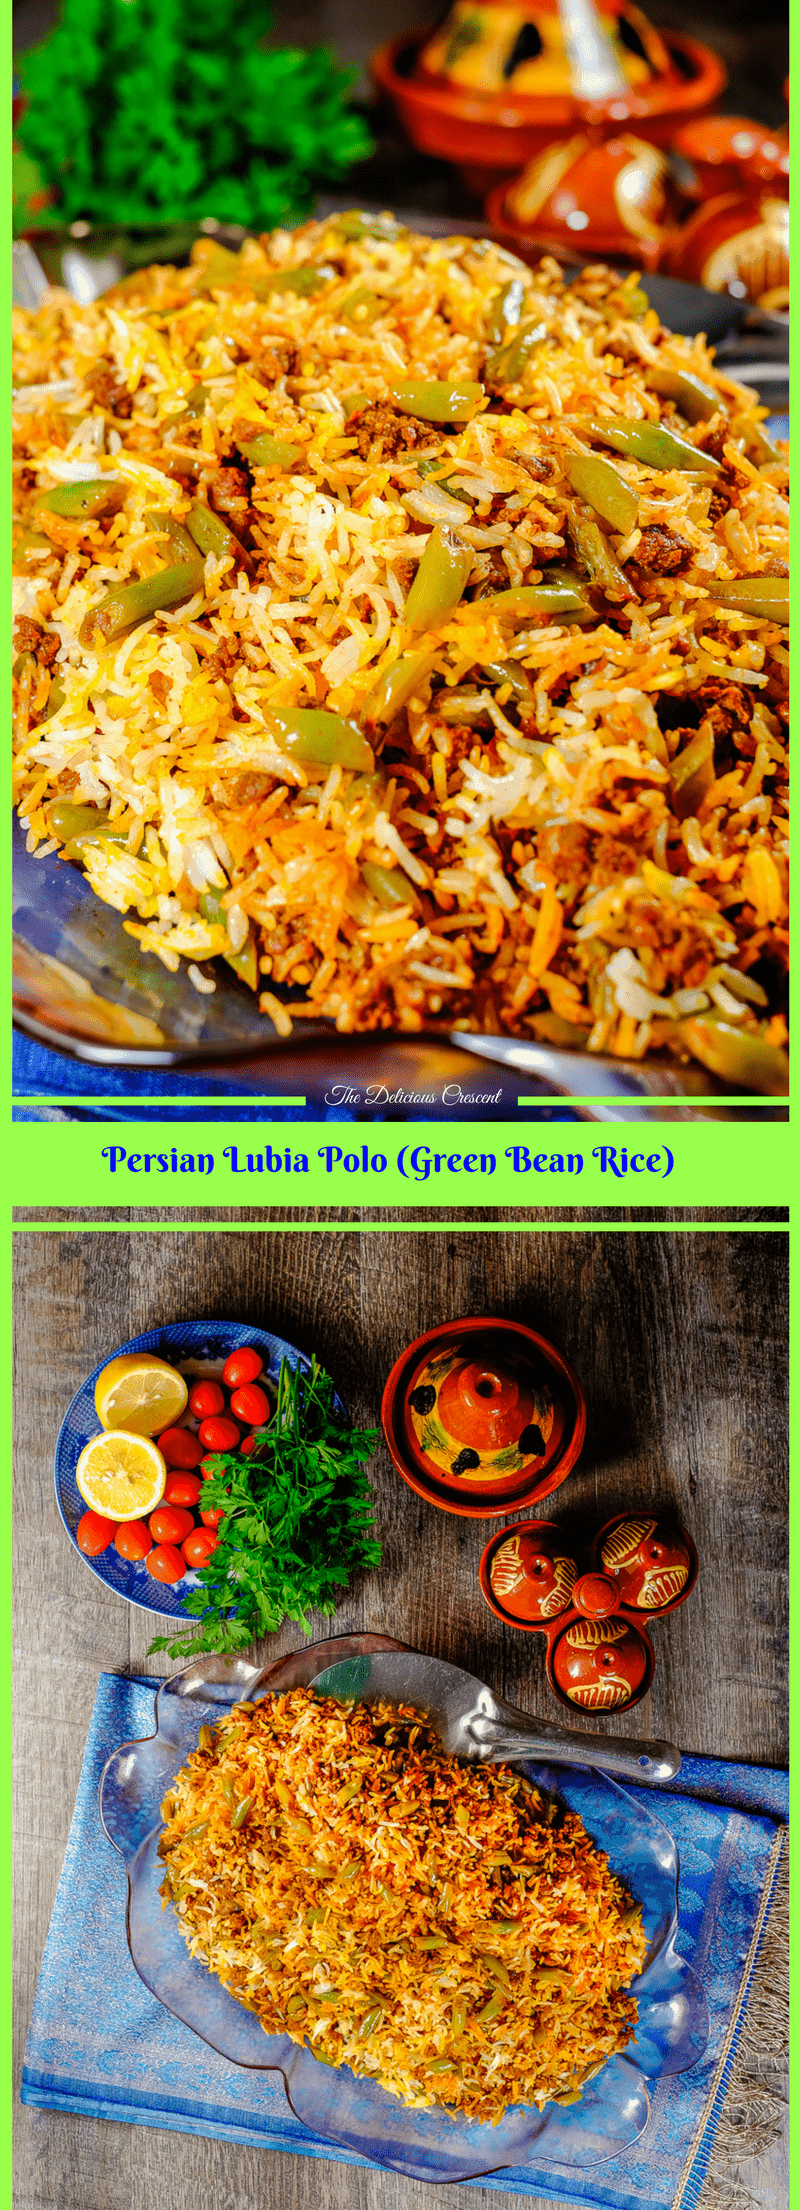 Persian Lubia Polo – a green bean rice, is a complete meal with an amazing taste, so quick and easy to prepare, with good protein, fiber and complex carbohydrates. It is a rice dish layered with green beans, spiced ground meat, tomatoes, herbs, lemon and infused with saffron.